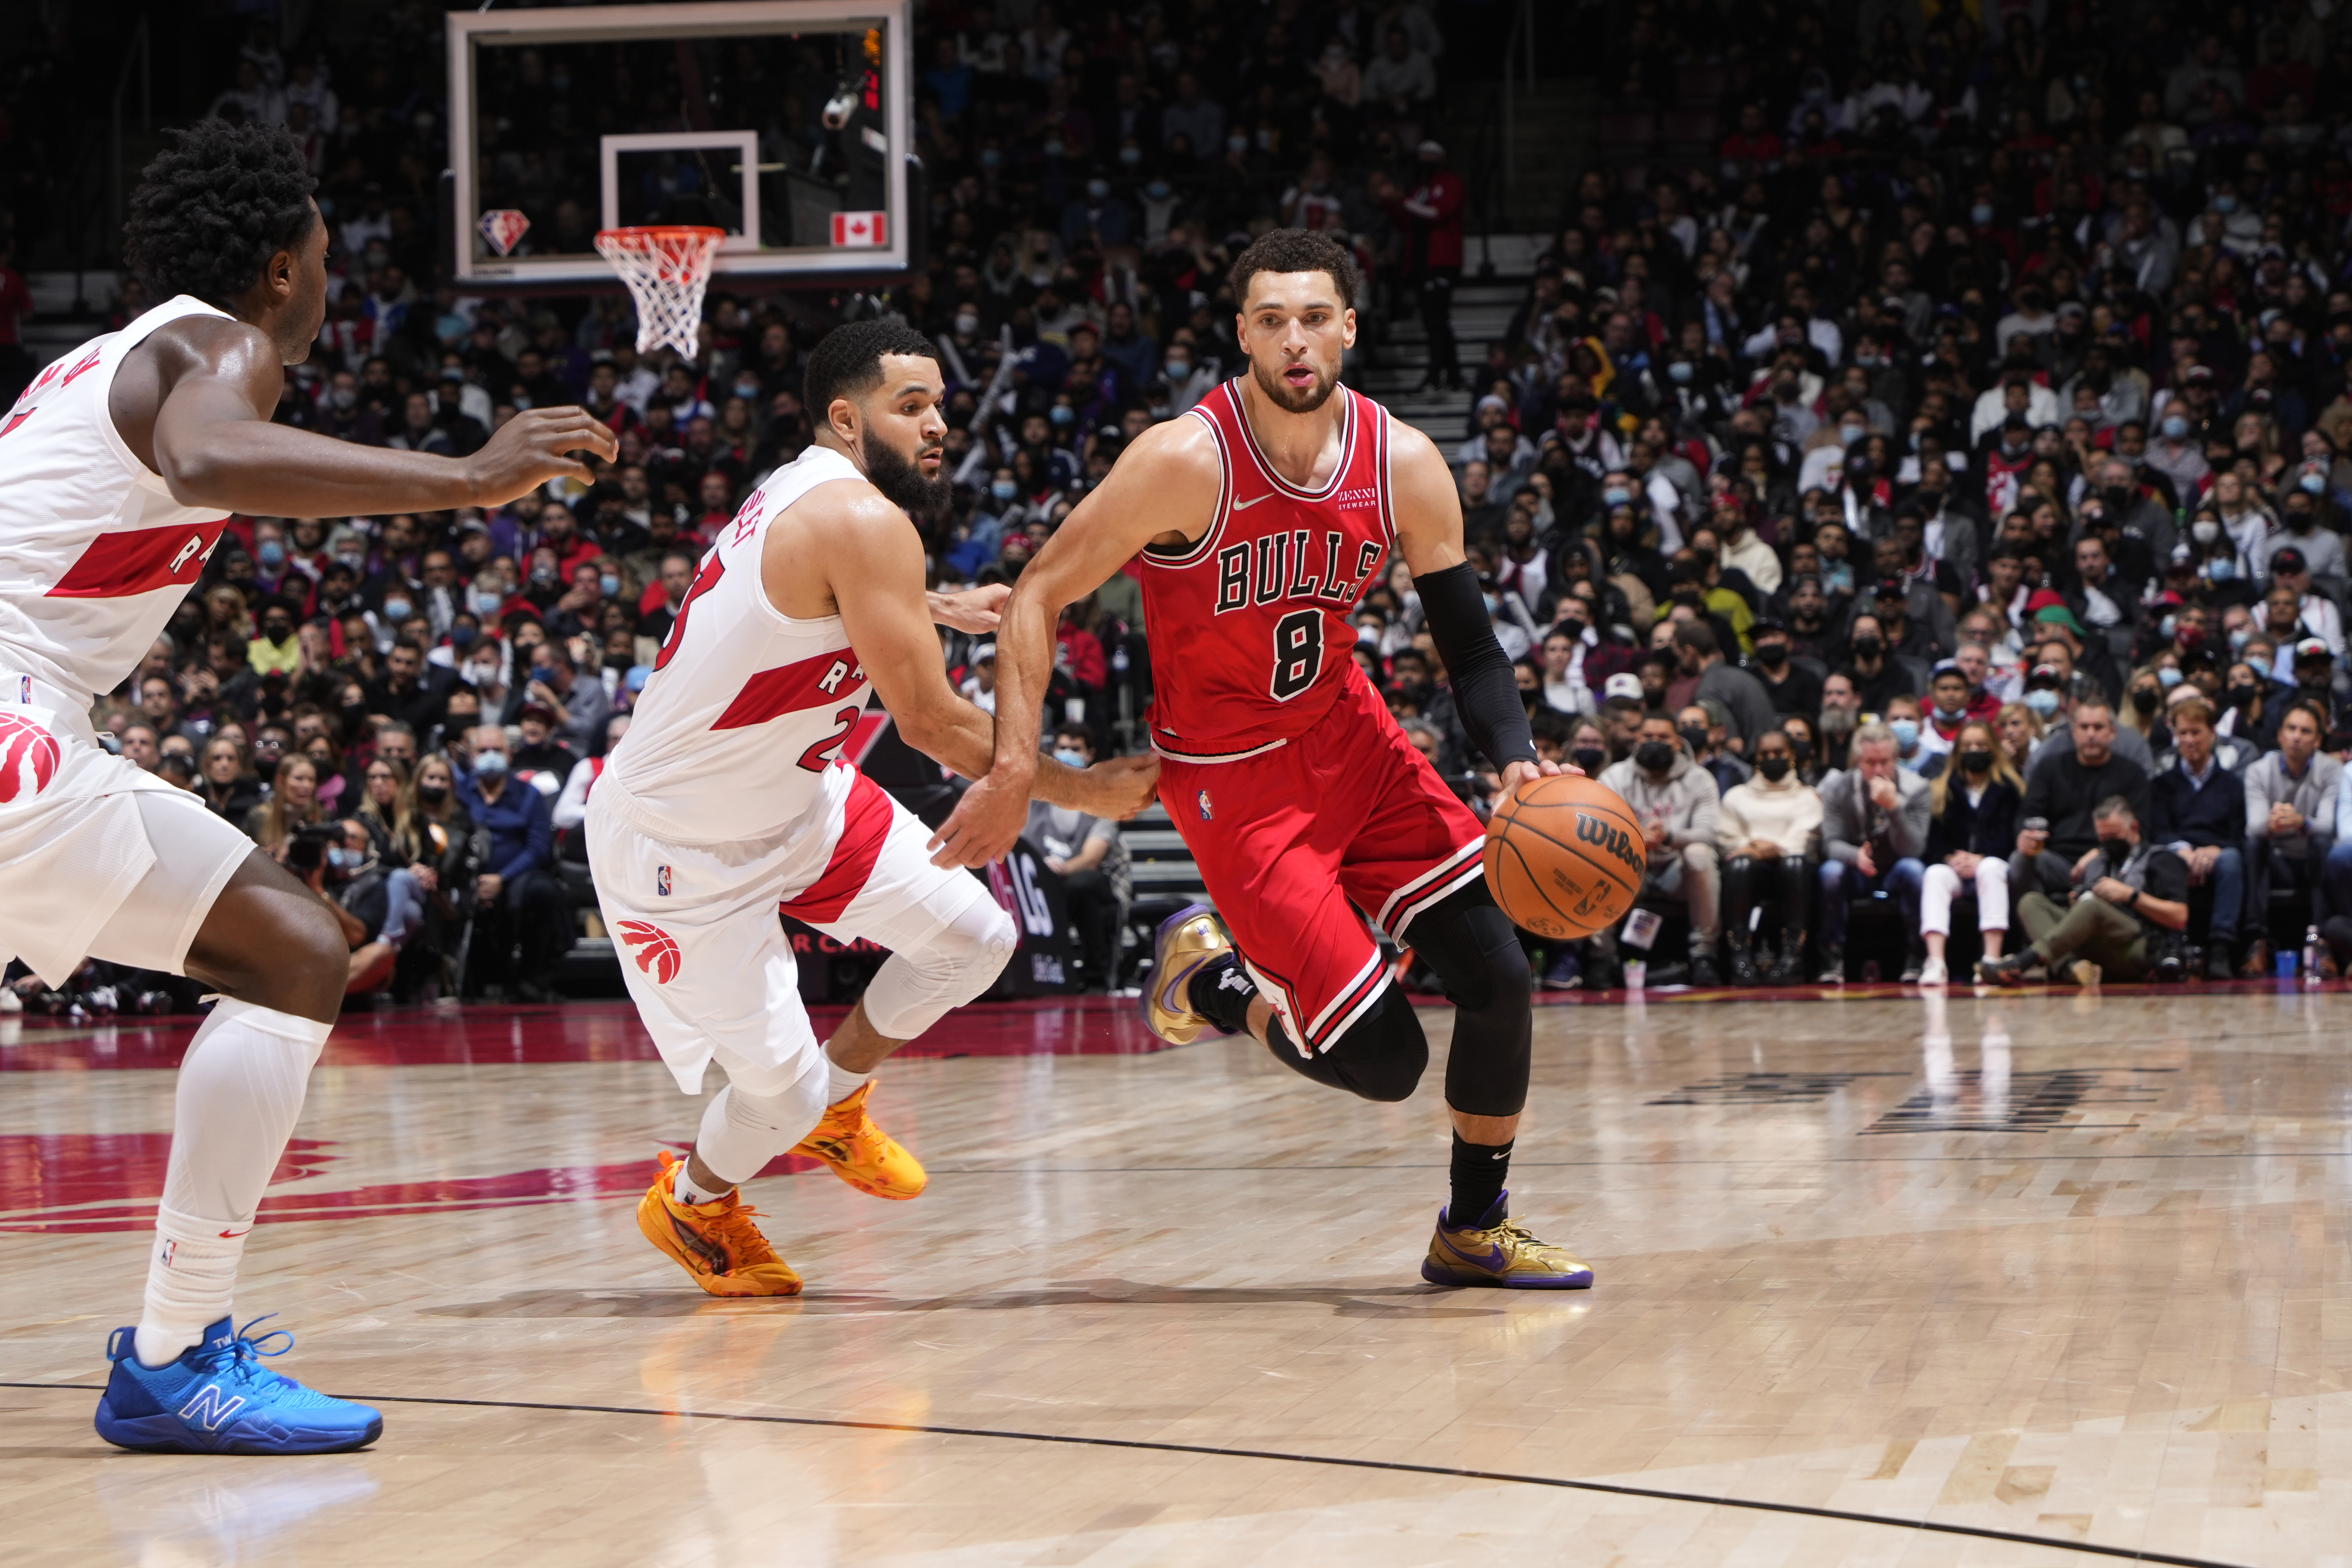 Zach LaVine #8 of the Chicago Bulls drives to the basket during the game against the Toronto Raptors on October 25, 2021 at the Scotiabank Arena in Toronto, Ontario, Canada.